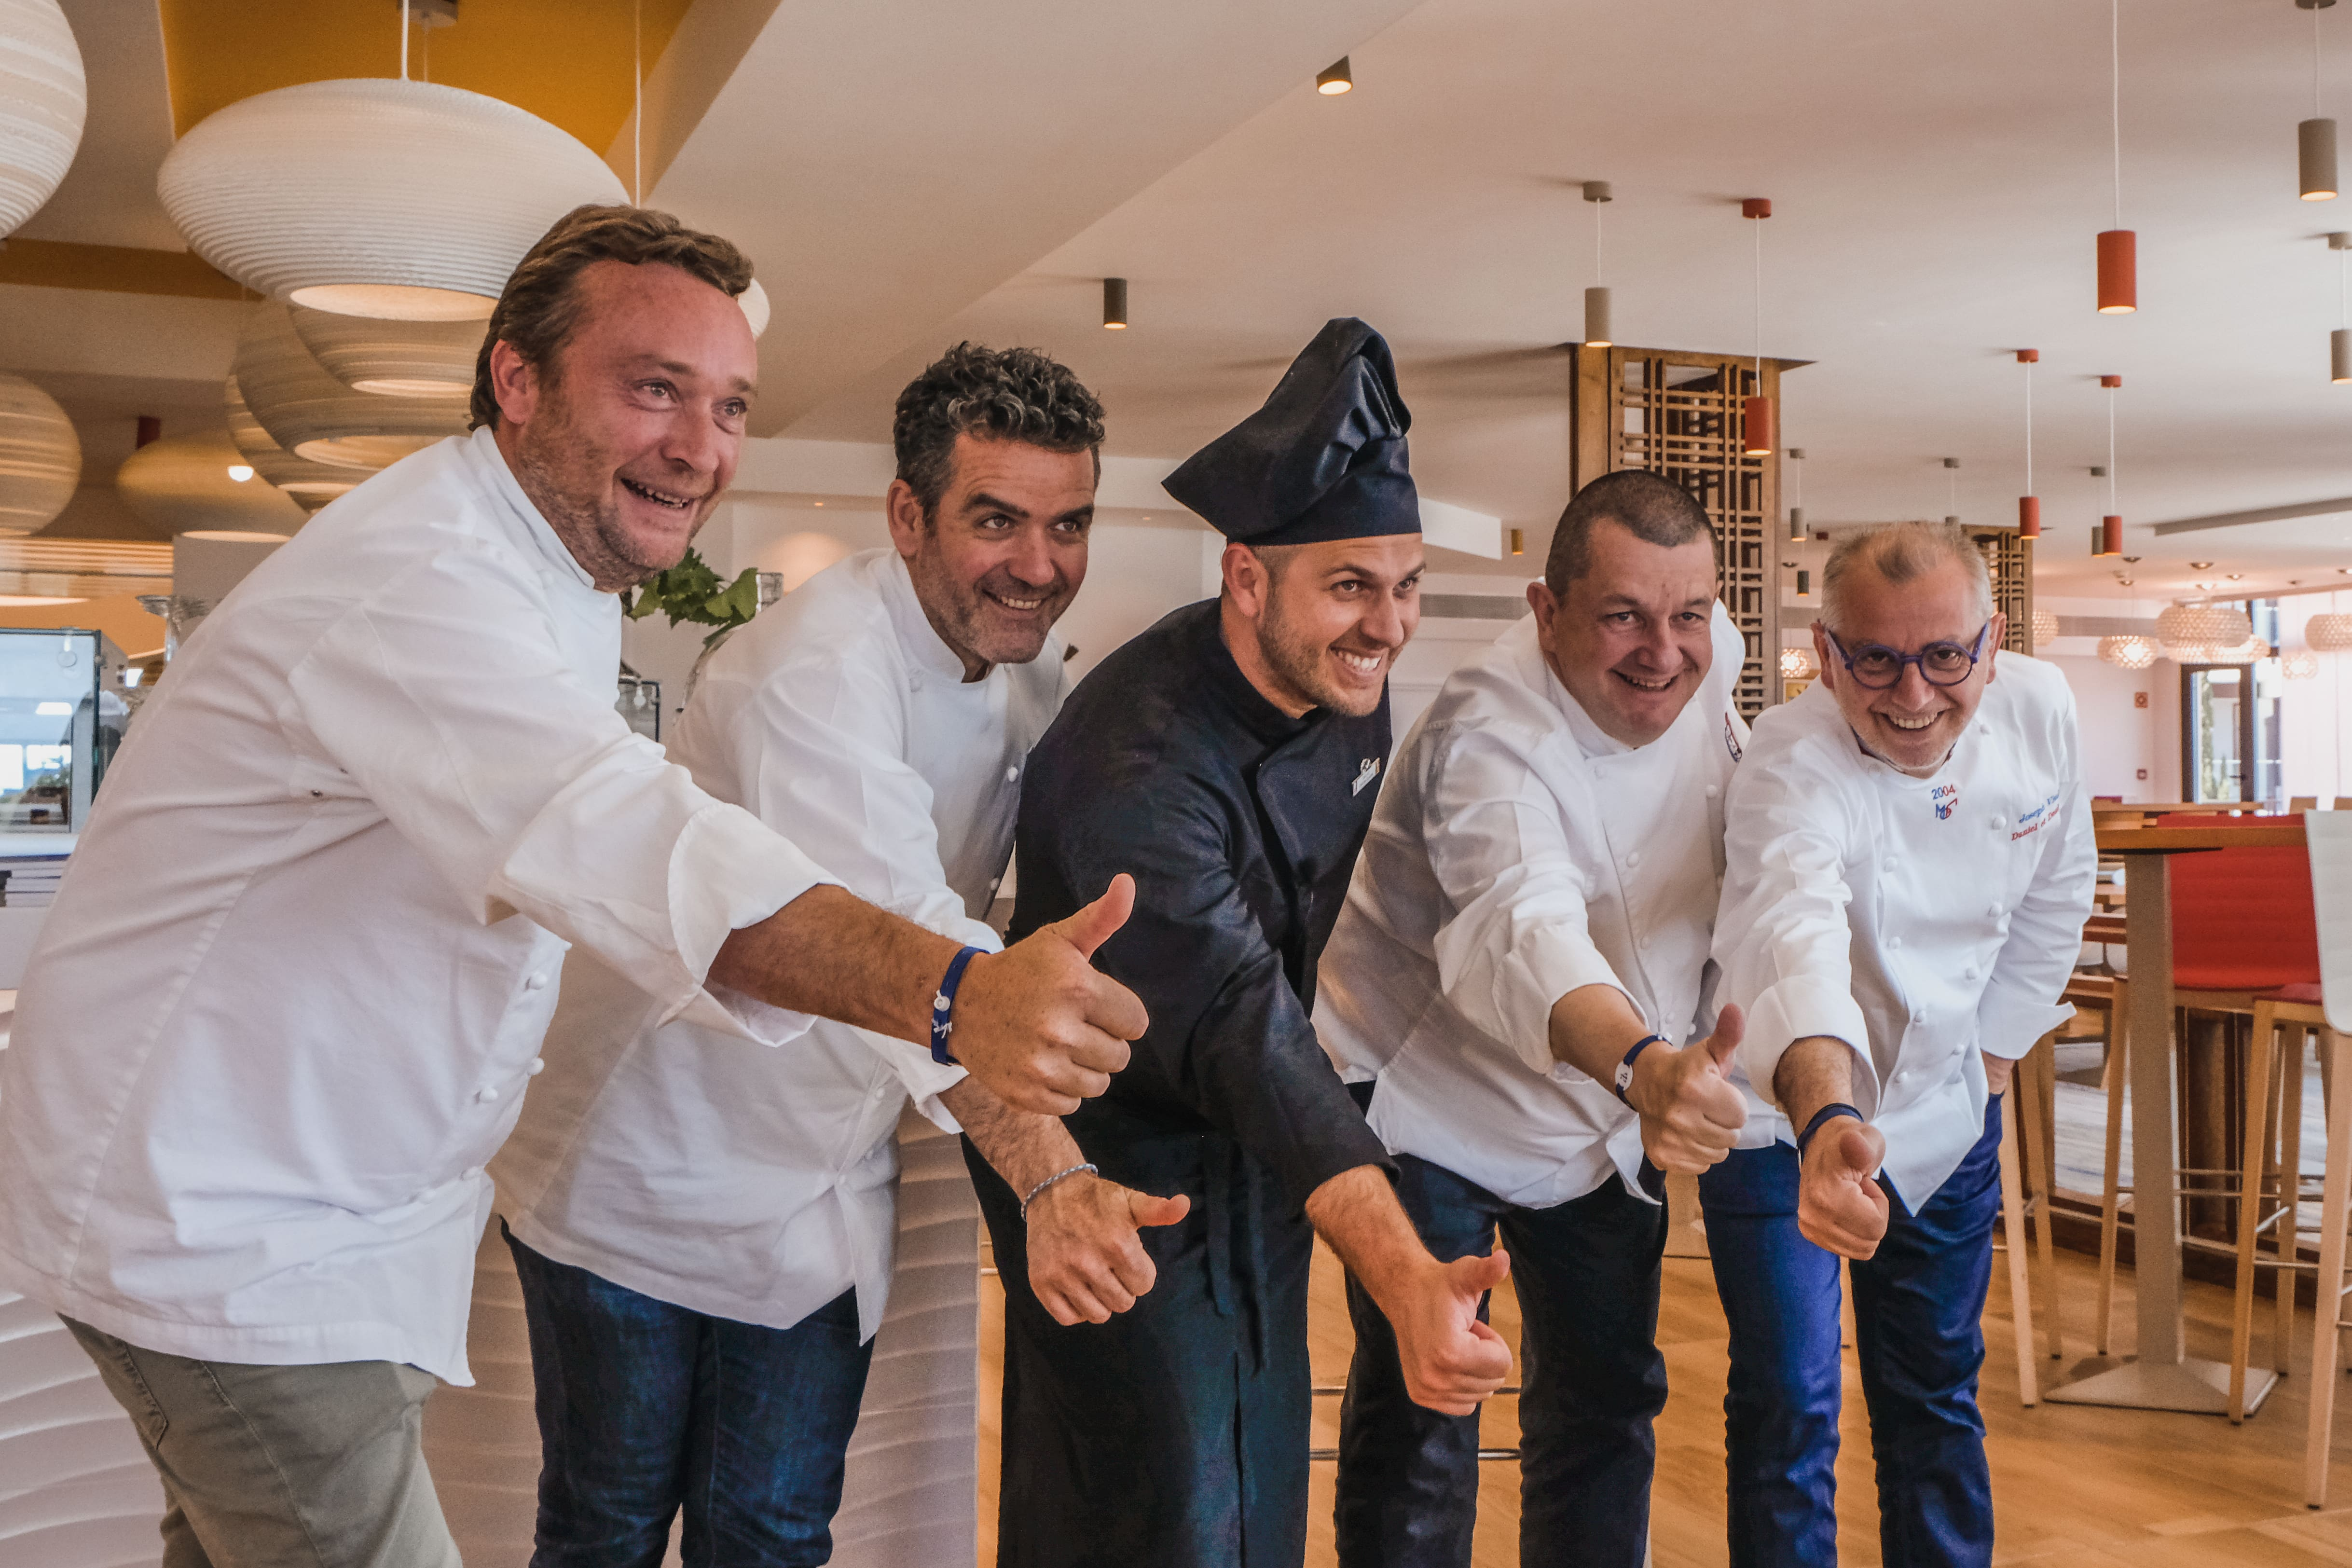 Les Toques Blanches Lyonnaises & Club Med, together to promote the values of gastronomy